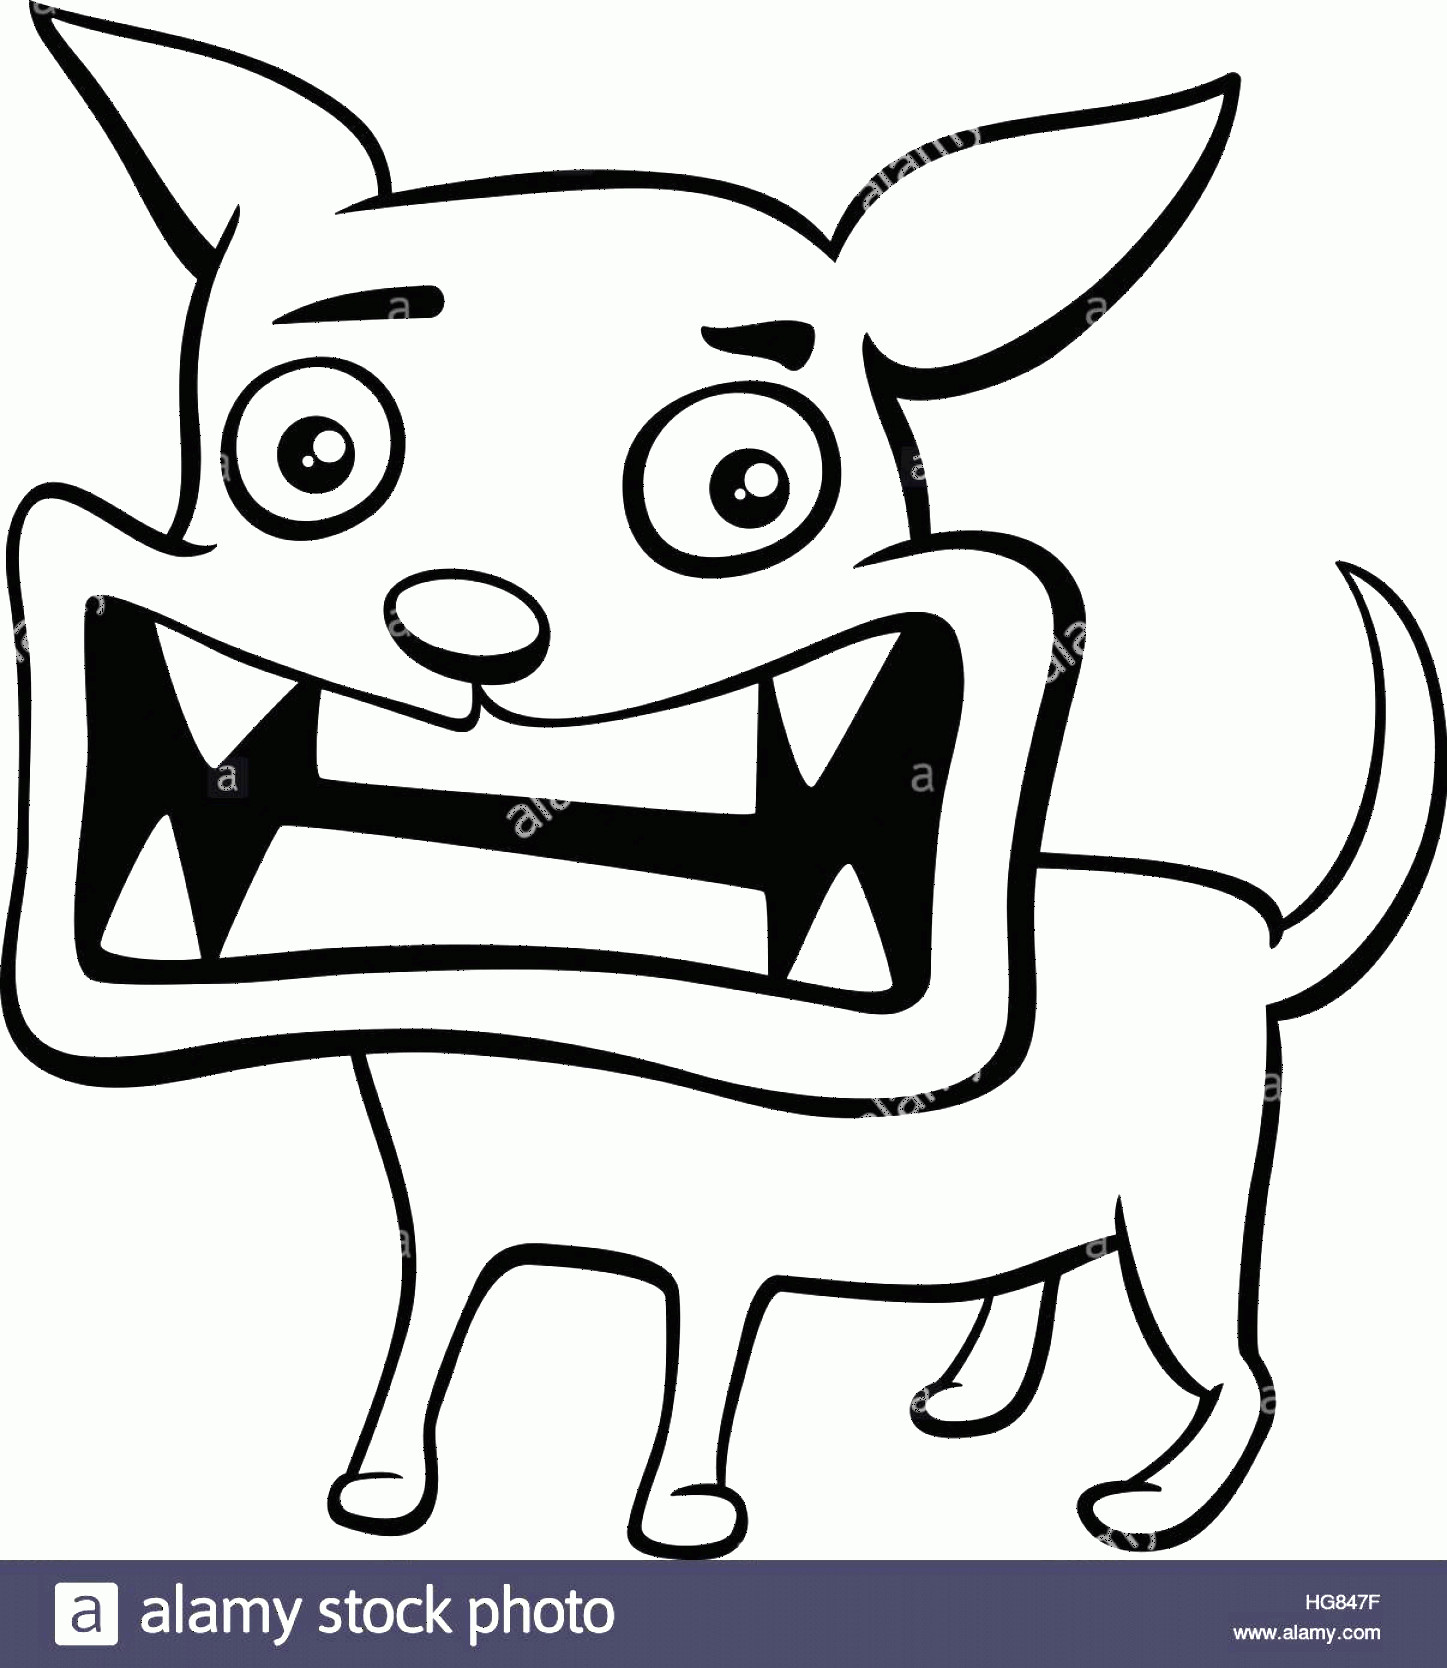 Angry Dog Vector Black And White: Stock Photo Black And White Cartoon Illustration Of Angry Dog Or Puppy Animal